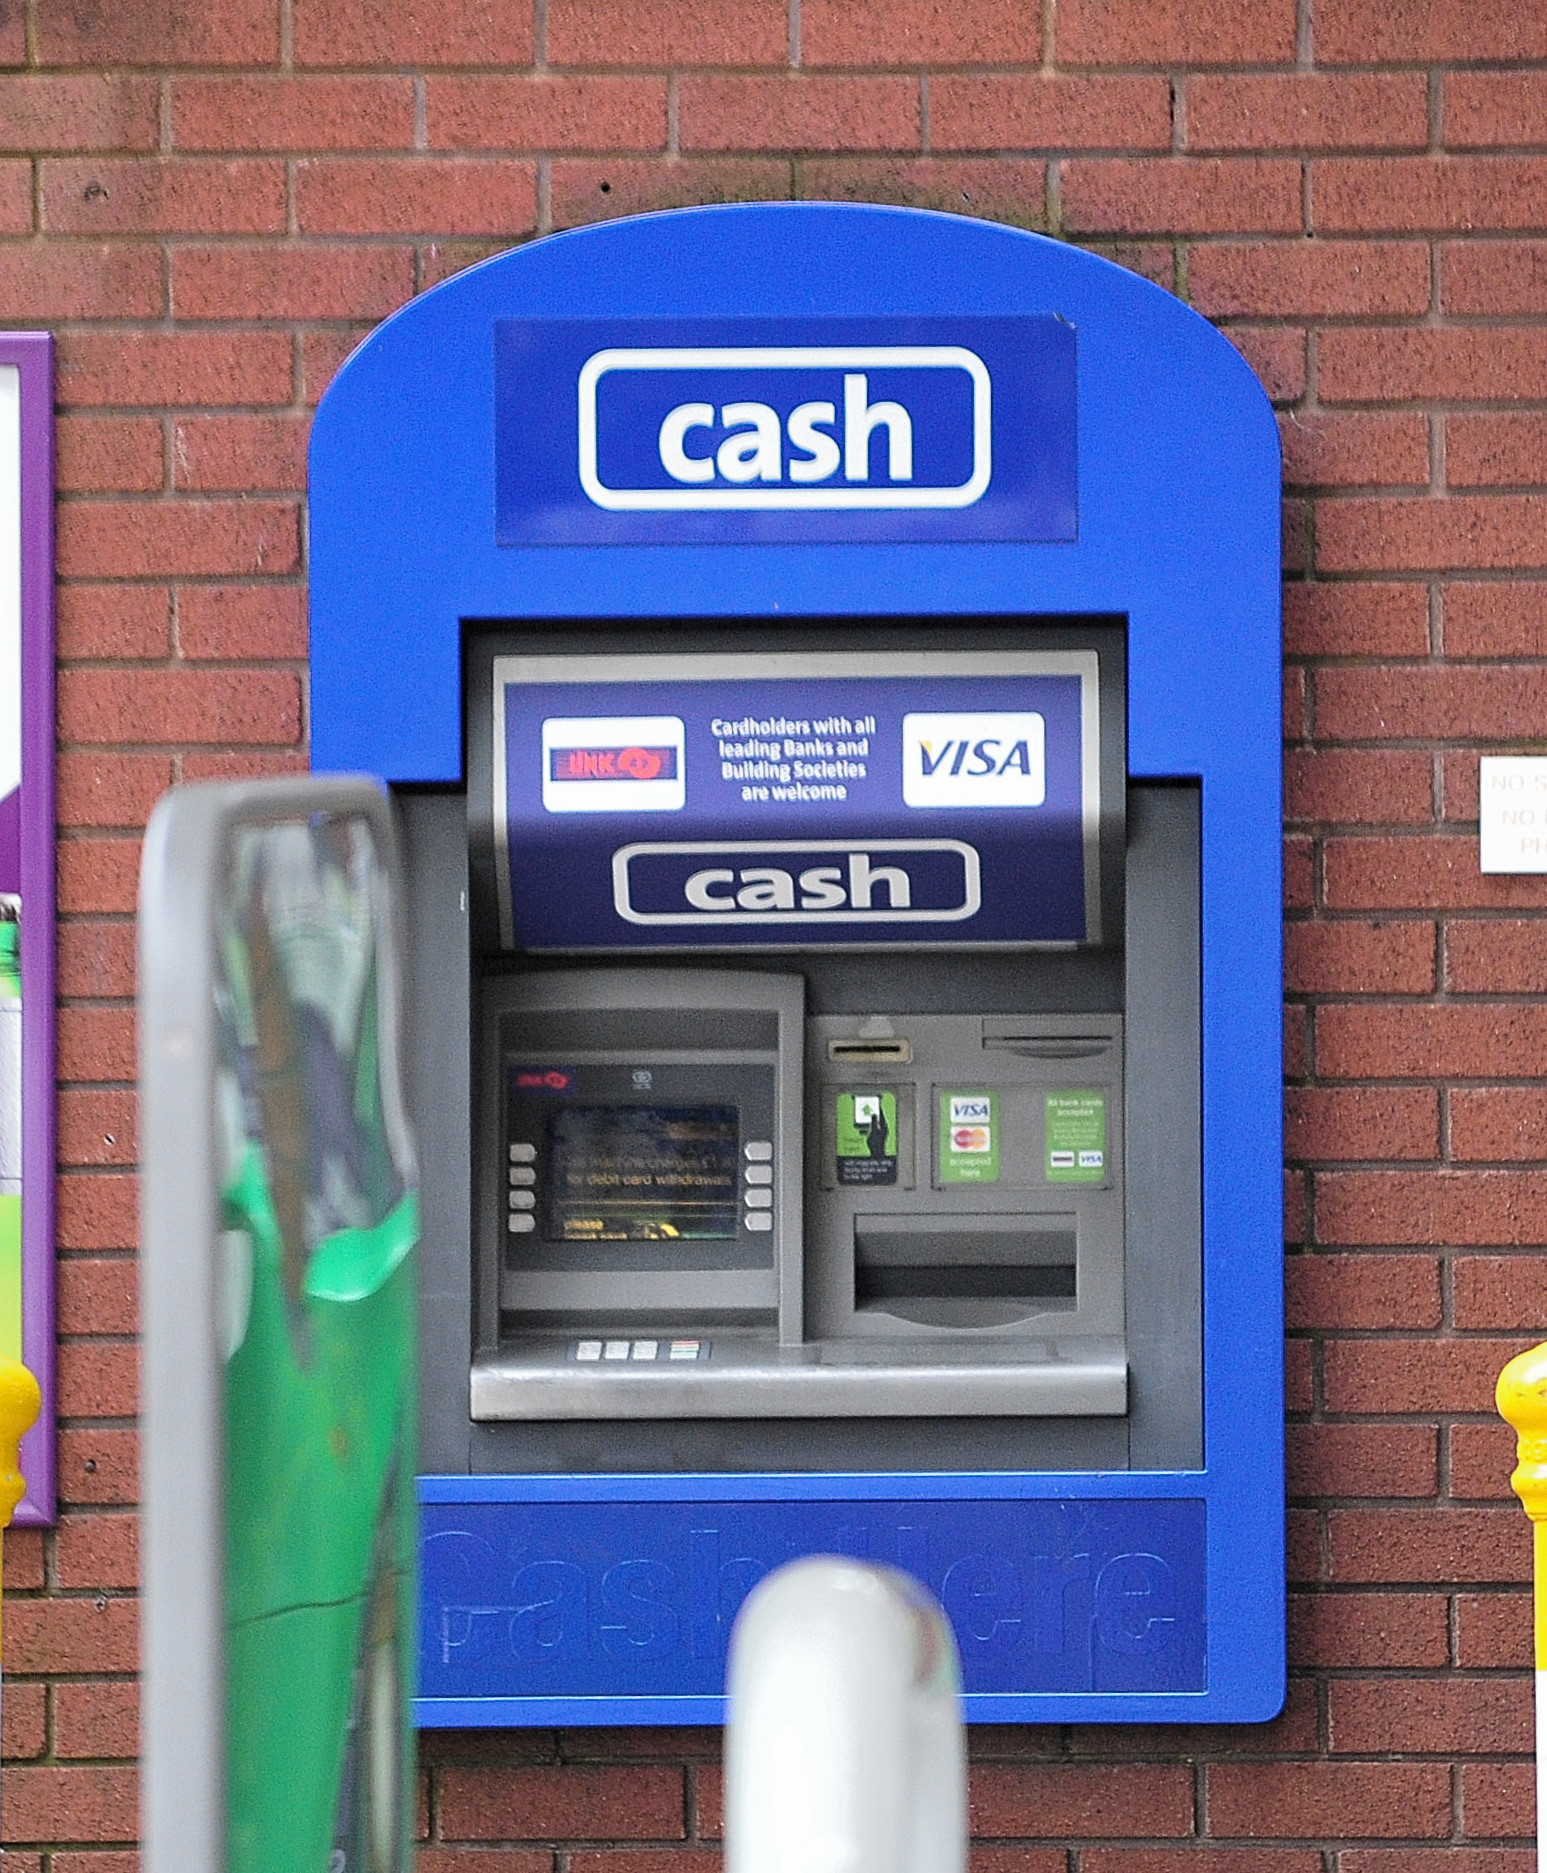 View of the Cashpoint at the BP Garage on Blackpole Road, Blackpole, Worcester. 20.8.18